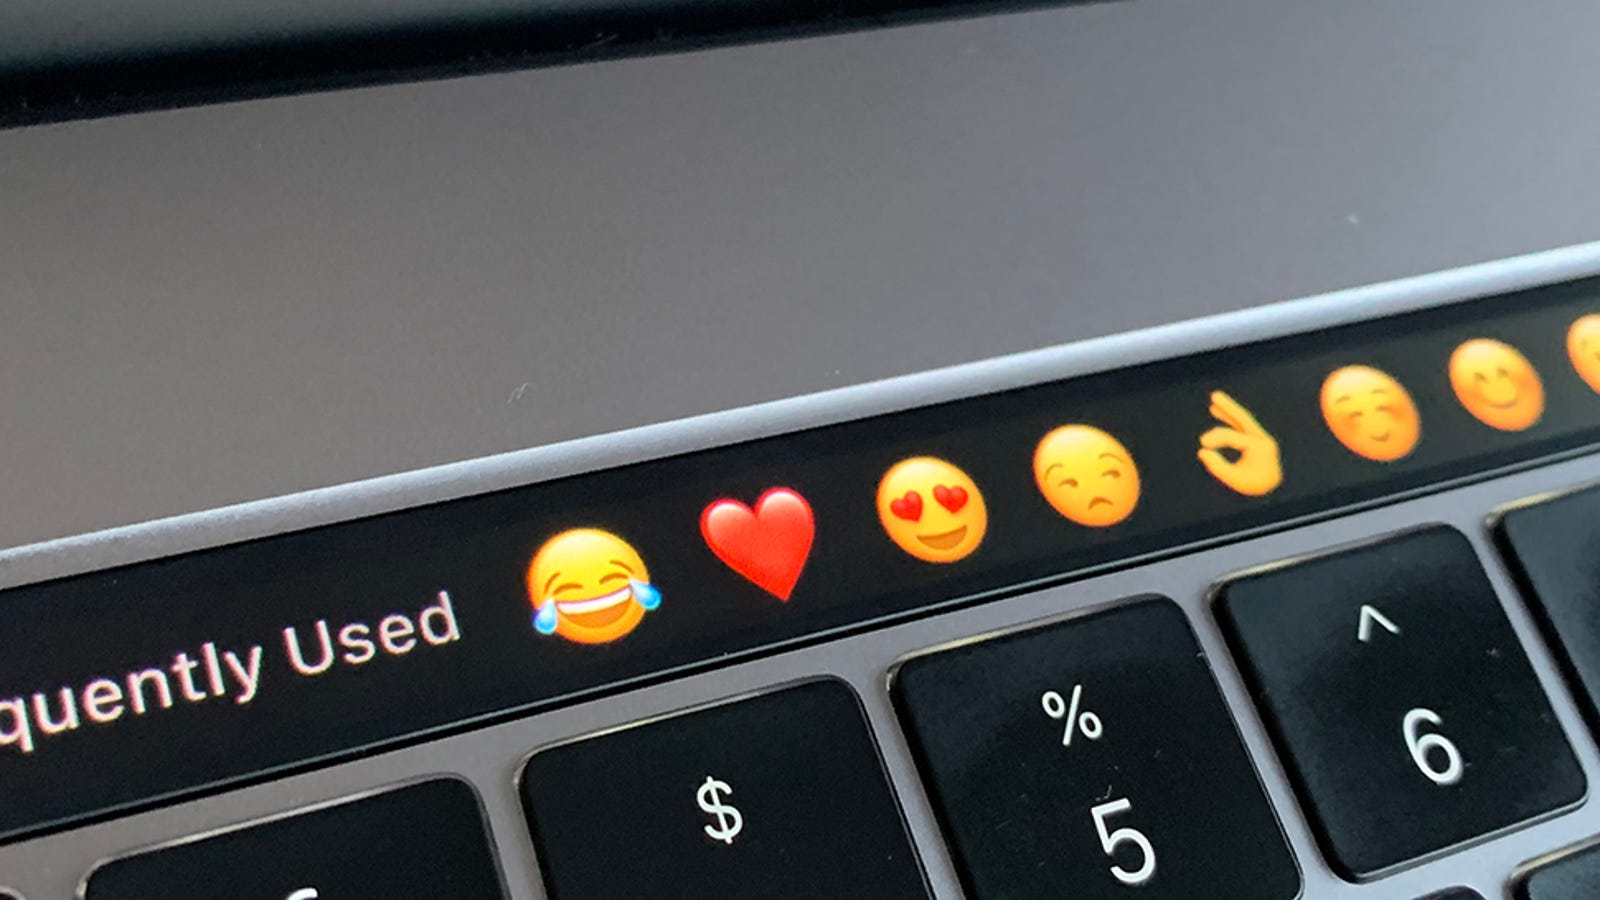 QnA VBage The Best macOS Apps That Actually Make Good Use of the Touch Bar